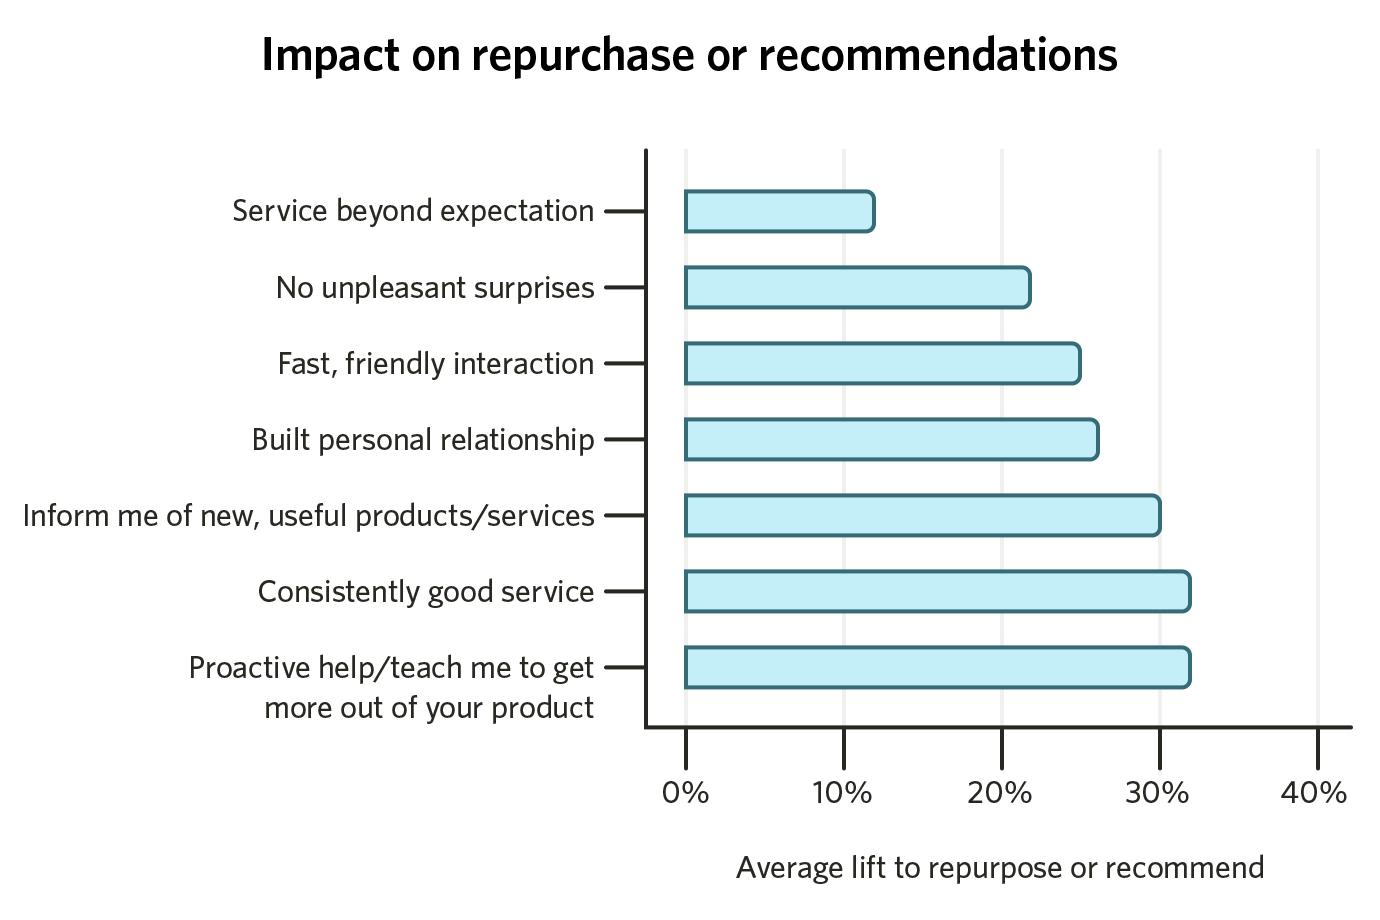 22 Customer Retention Strategies That Work Electrical Service Panel Wiring Diagram Http Phcjamblogspotcom Impact On Repurchase Or Reccomendations